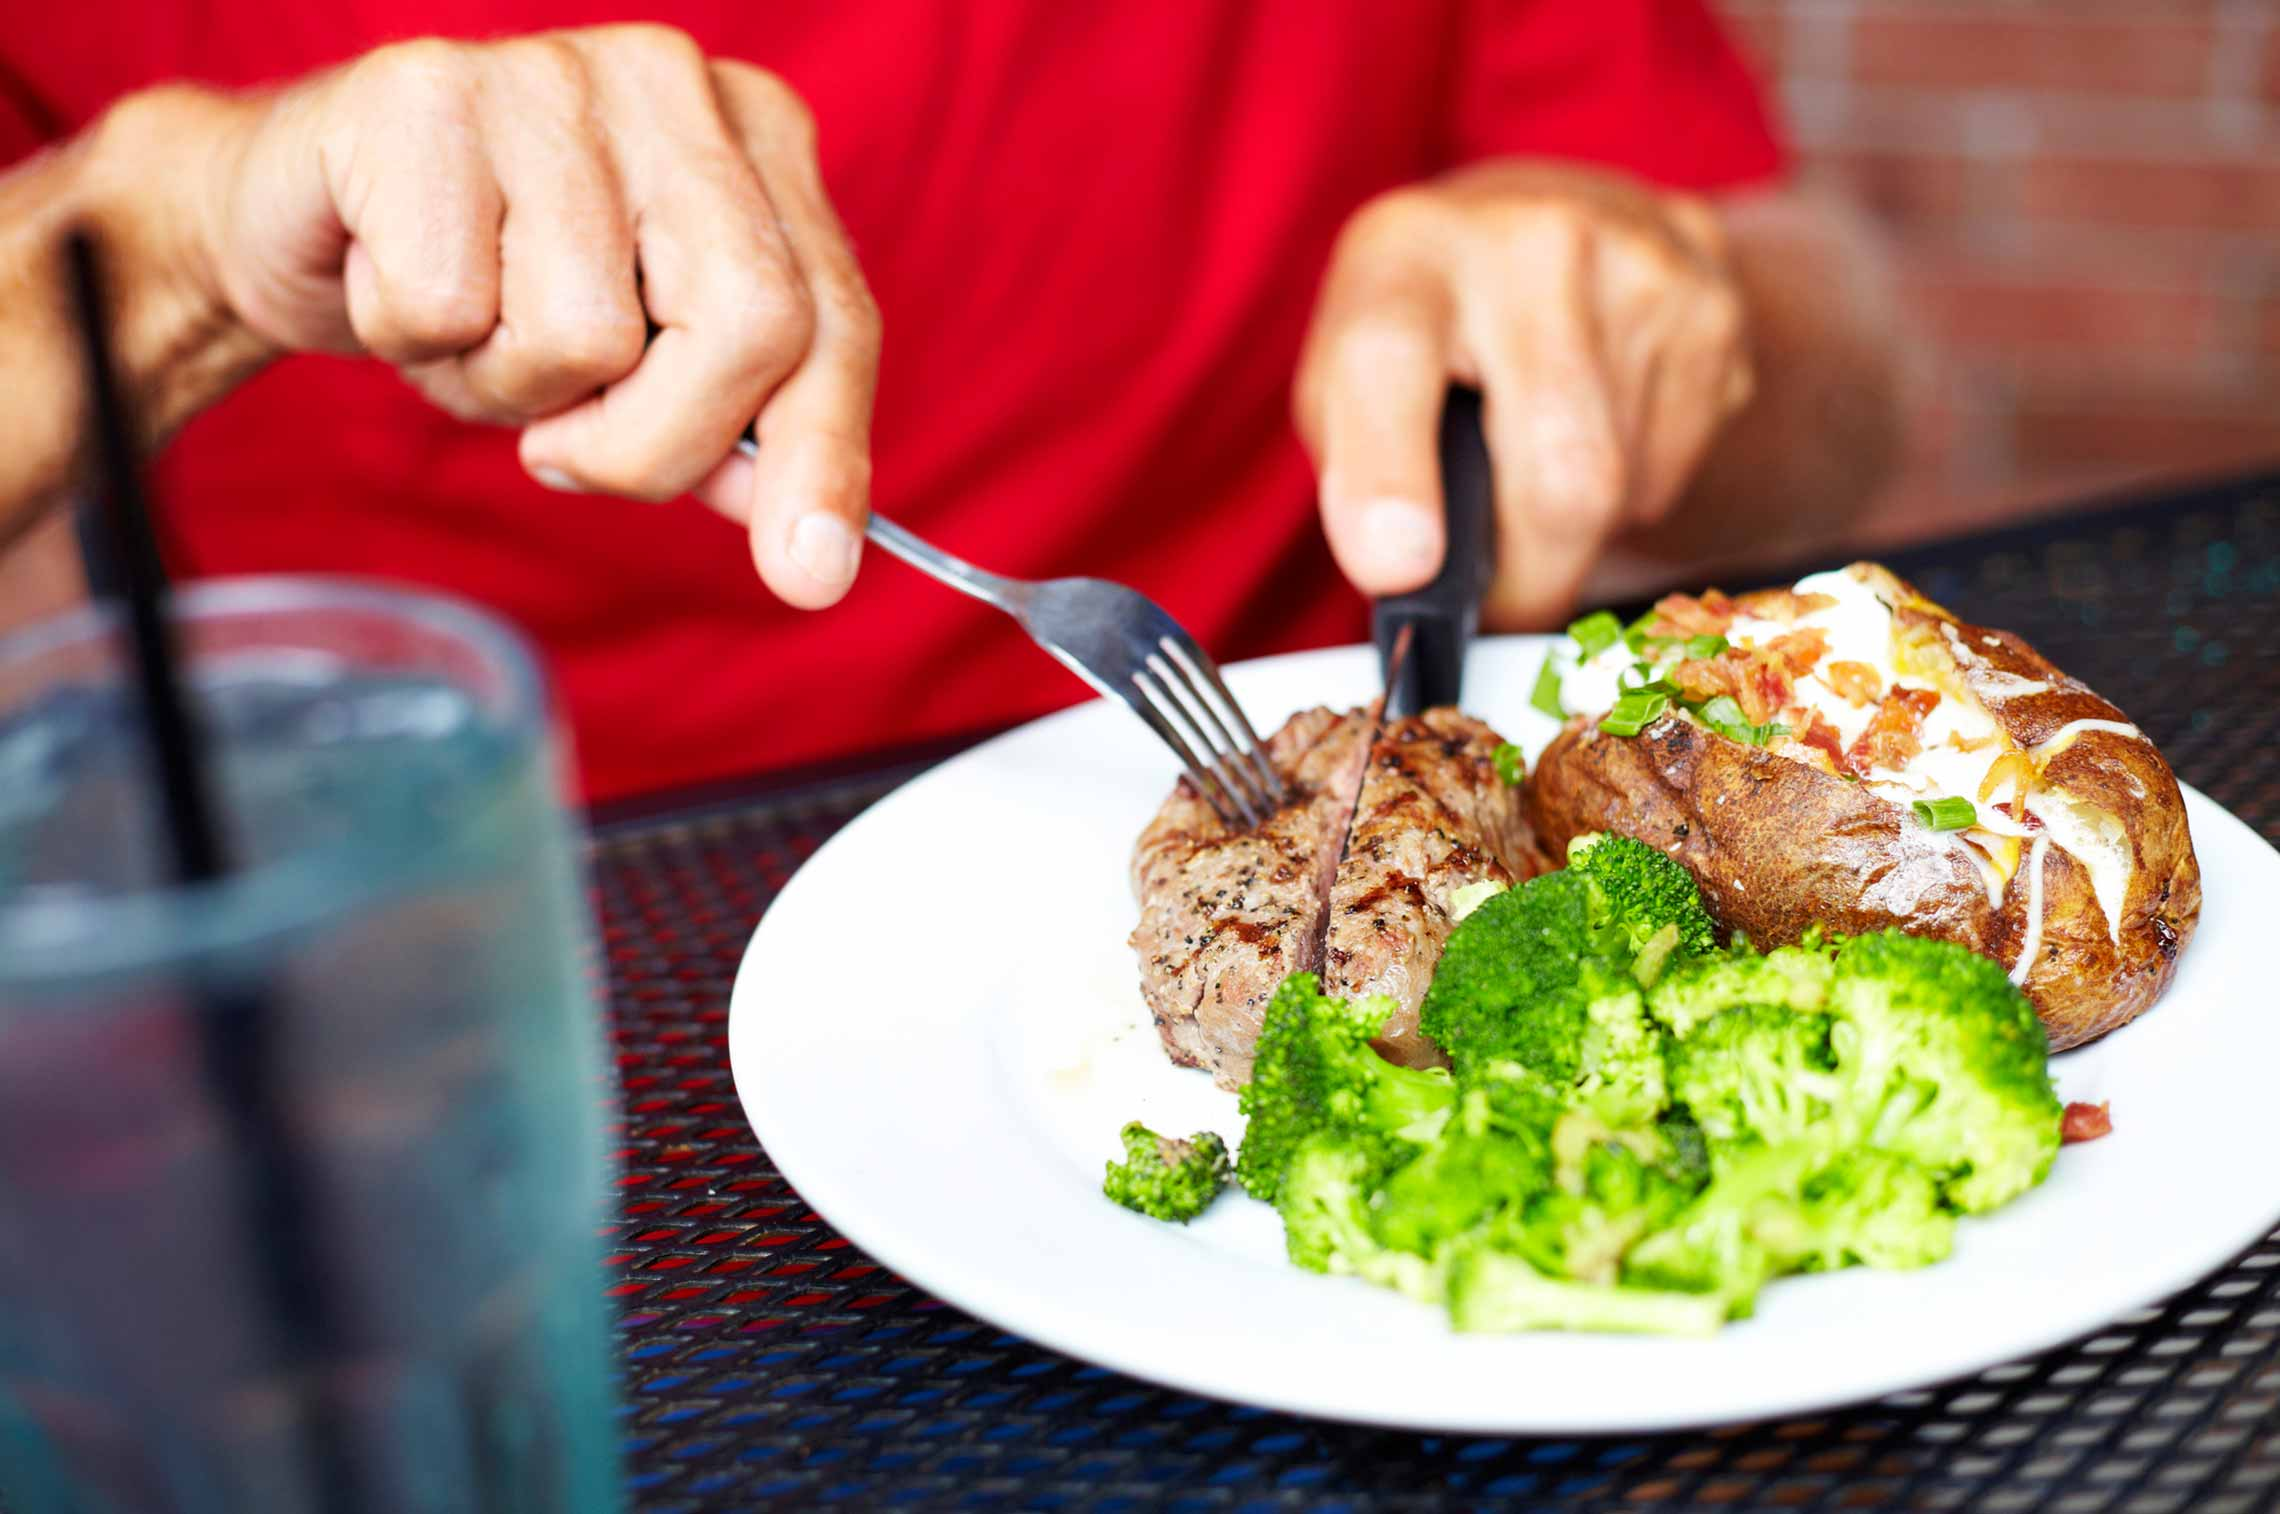 Nutrition and Diet – Where's the Beef?